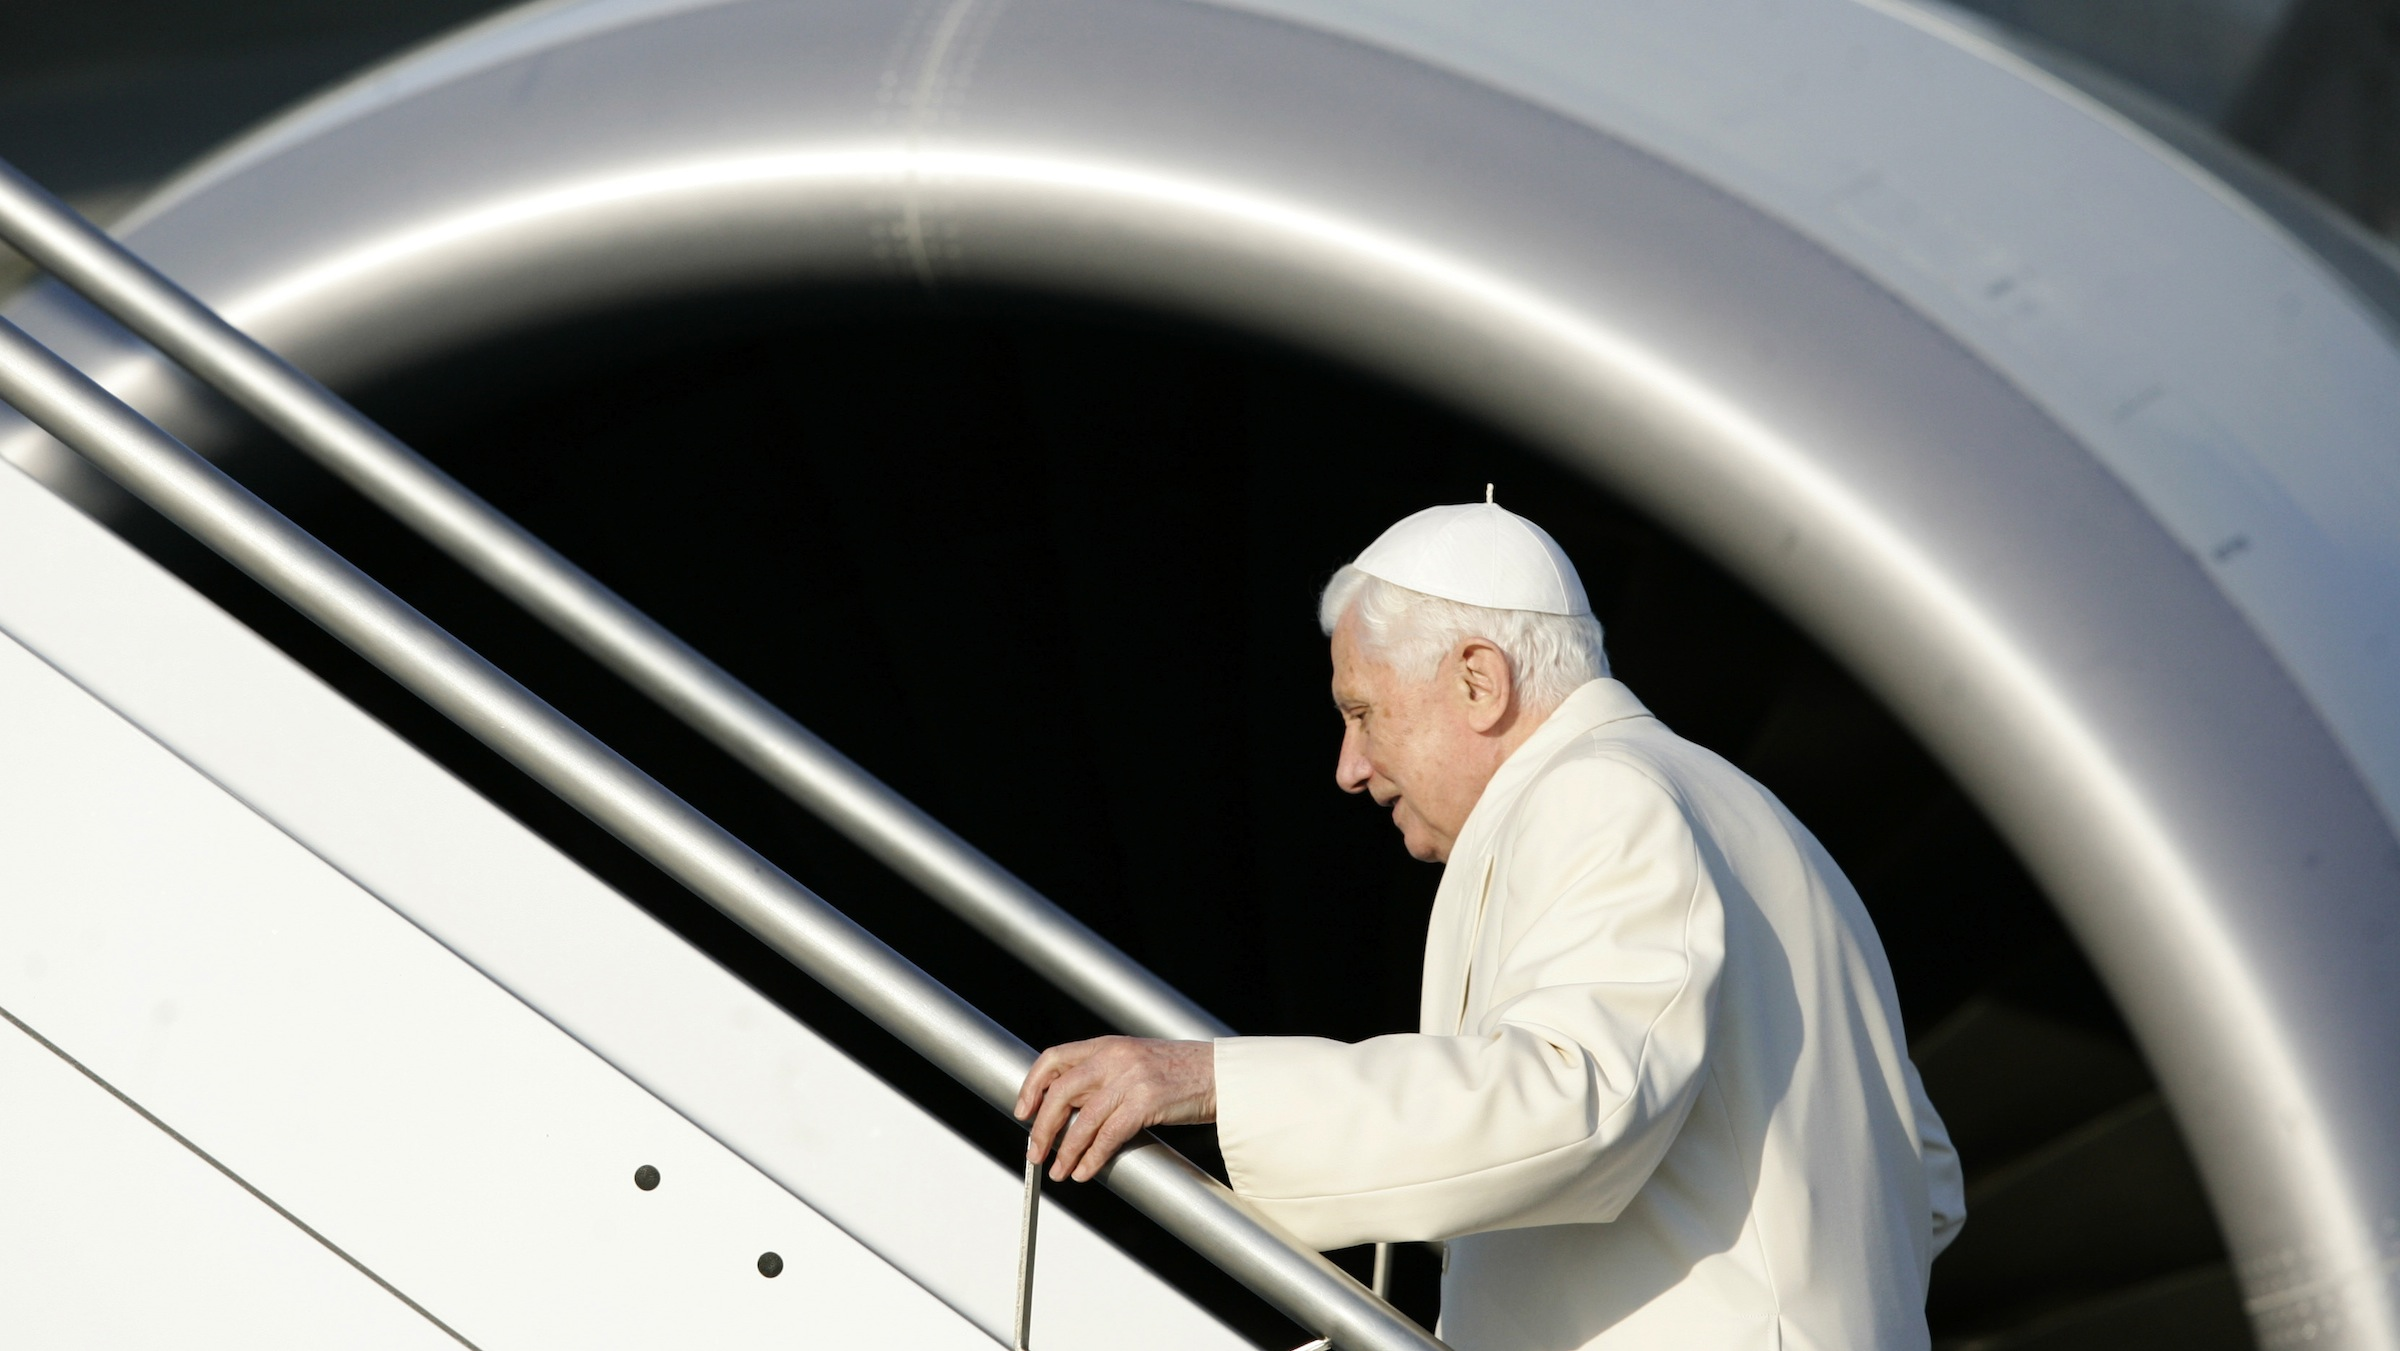 Pope Benedict XVI boards a plane